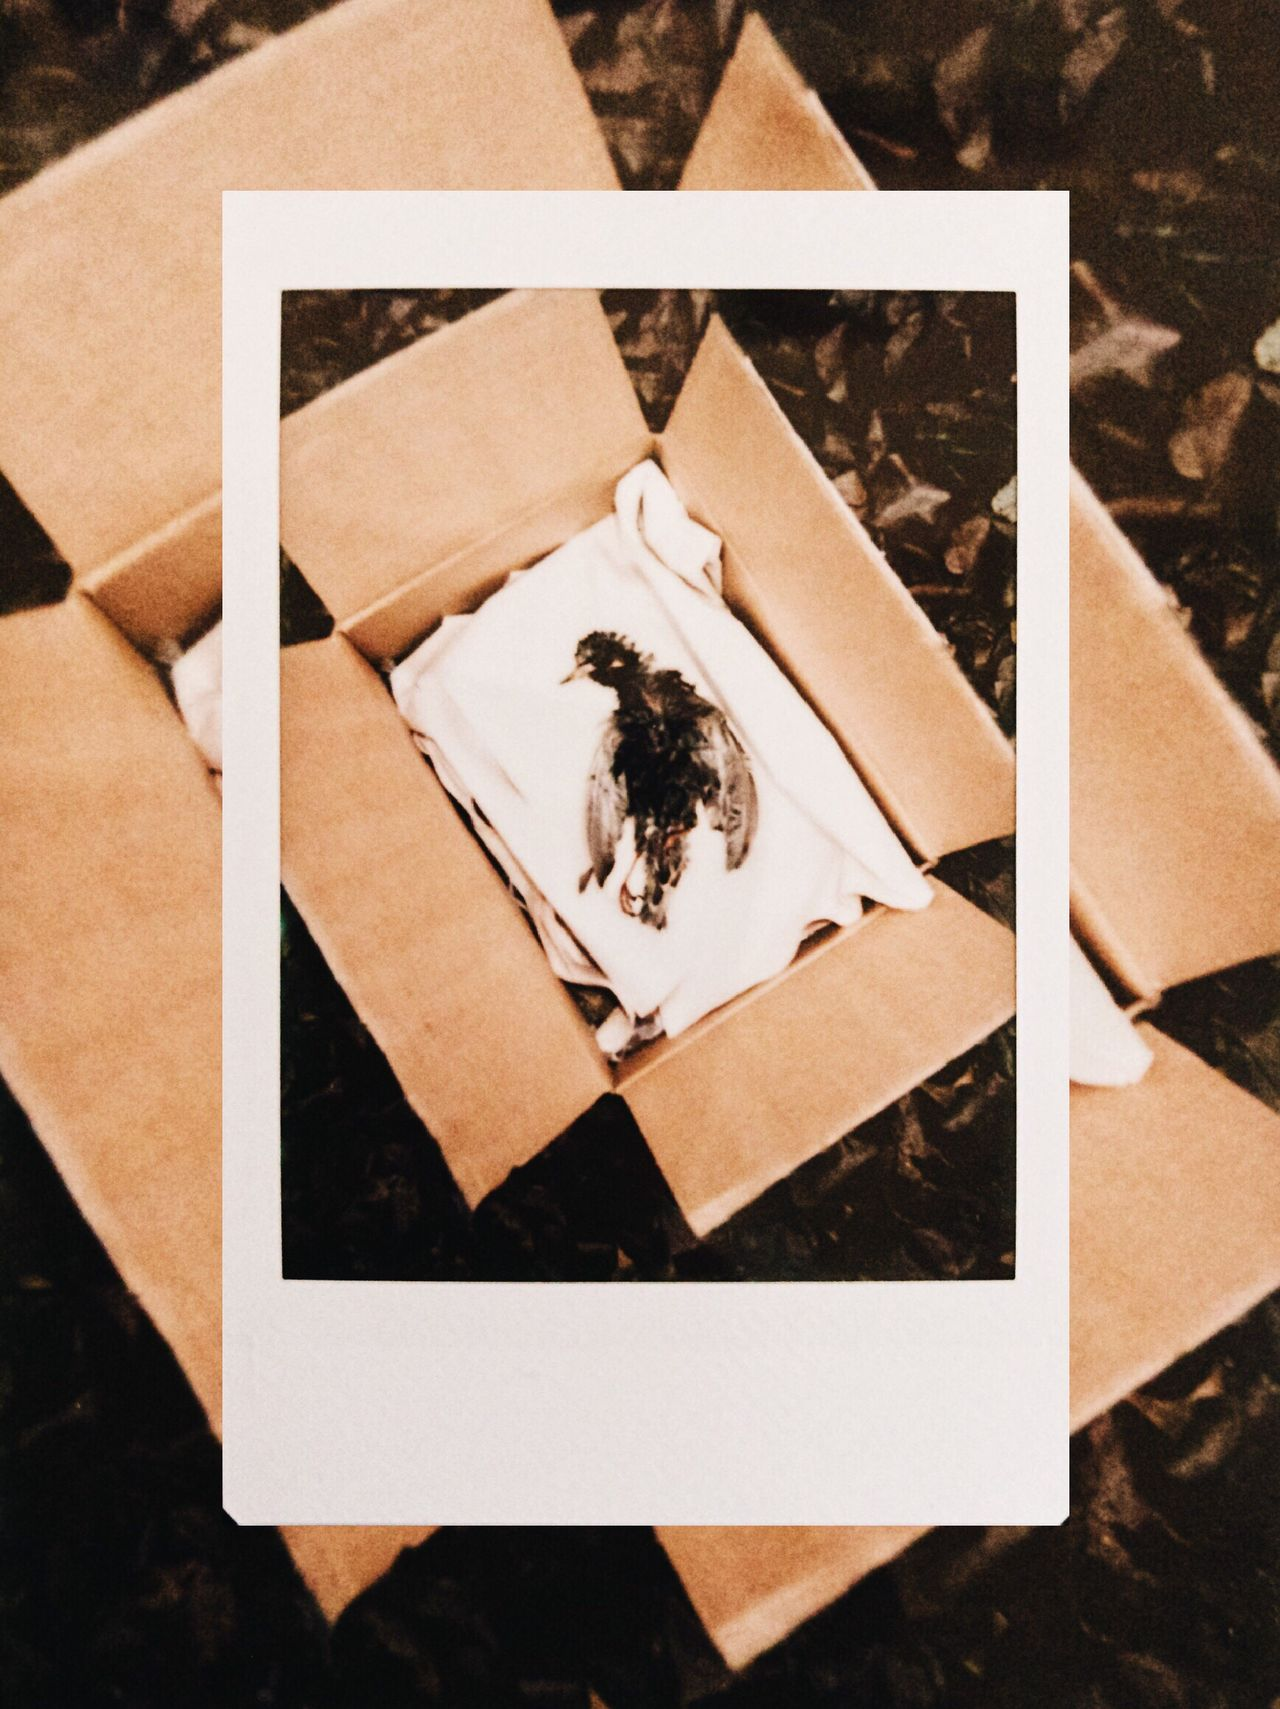 Day 25. Instant Photo A Day Paper Photograph Backgrounds No People Close-up Indoors  Bird Nature Collection Nature Death Simplicity Tranquility Film Photography Film The Week On EyeEm